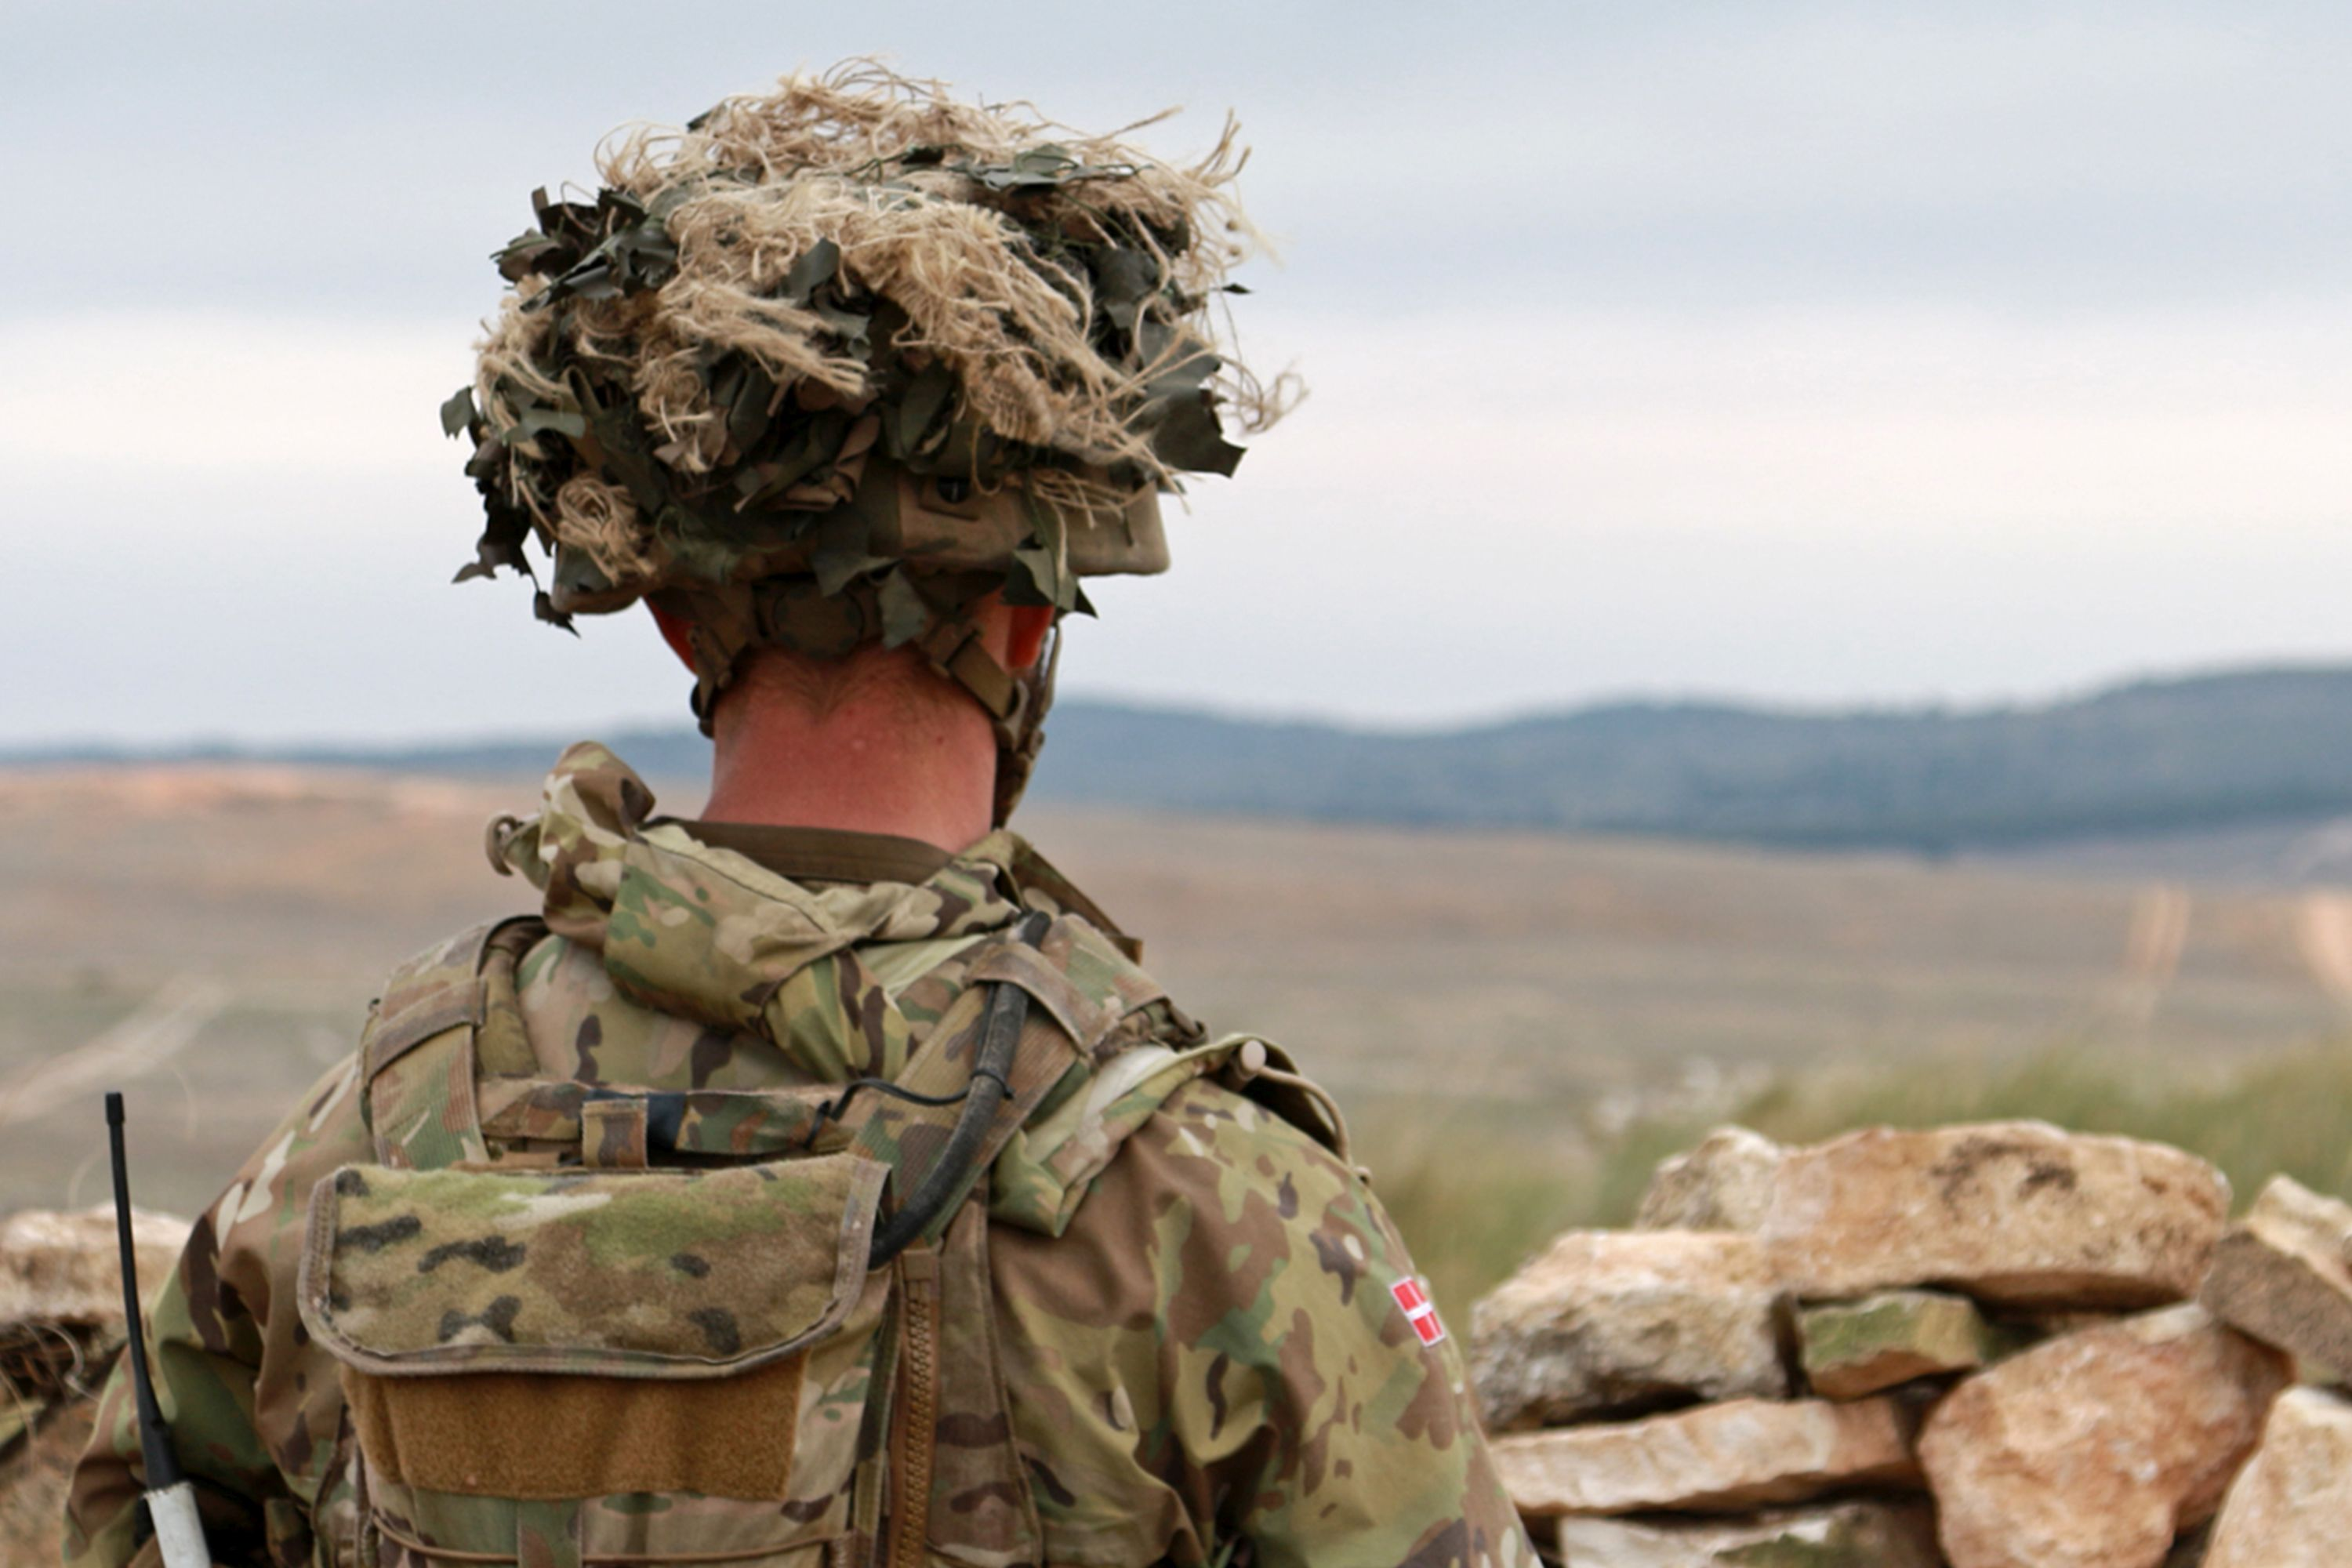 Image of a soldier from the back